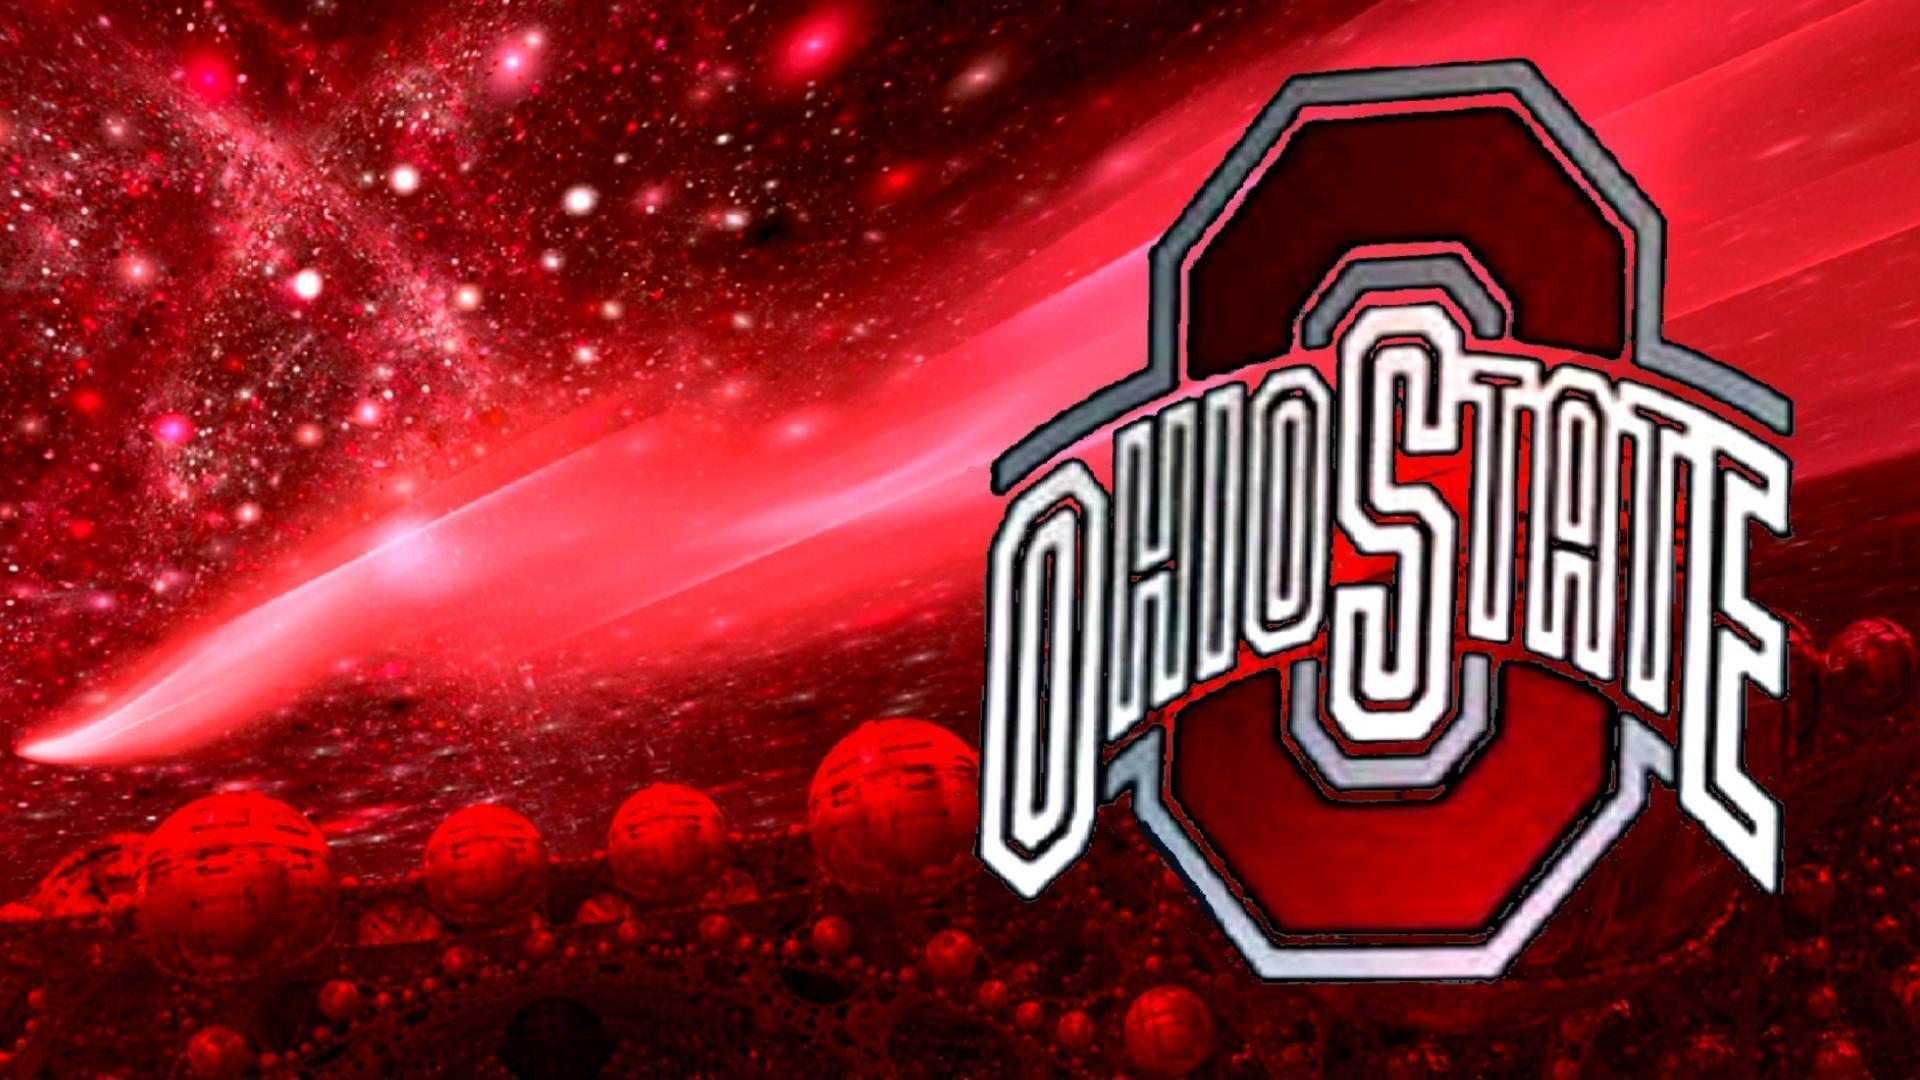 Ohio State Football Backgrounds 1920x1080